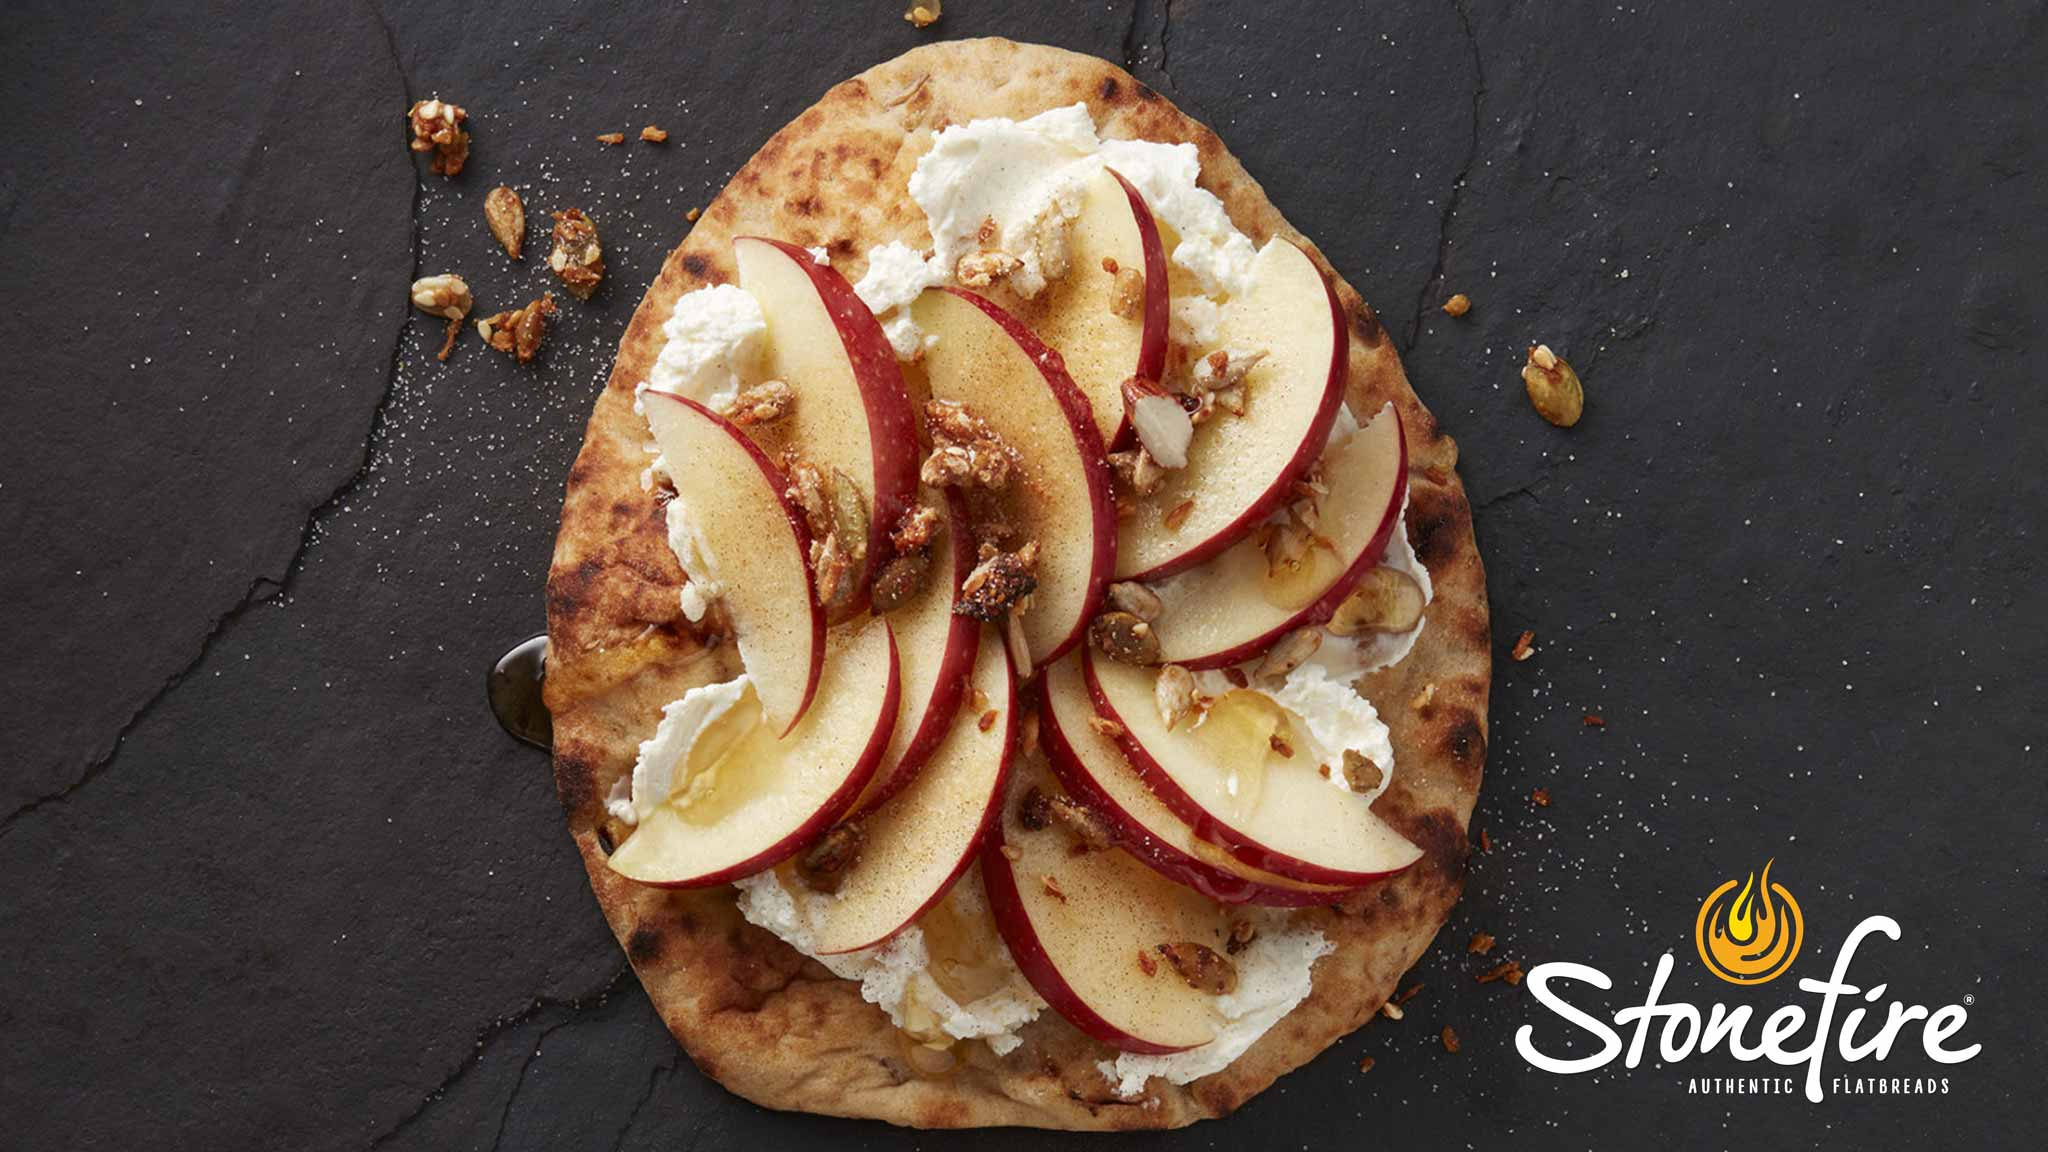 Image for Recipe Stonefire Mini Naan Apple and Cream Cheese Toast